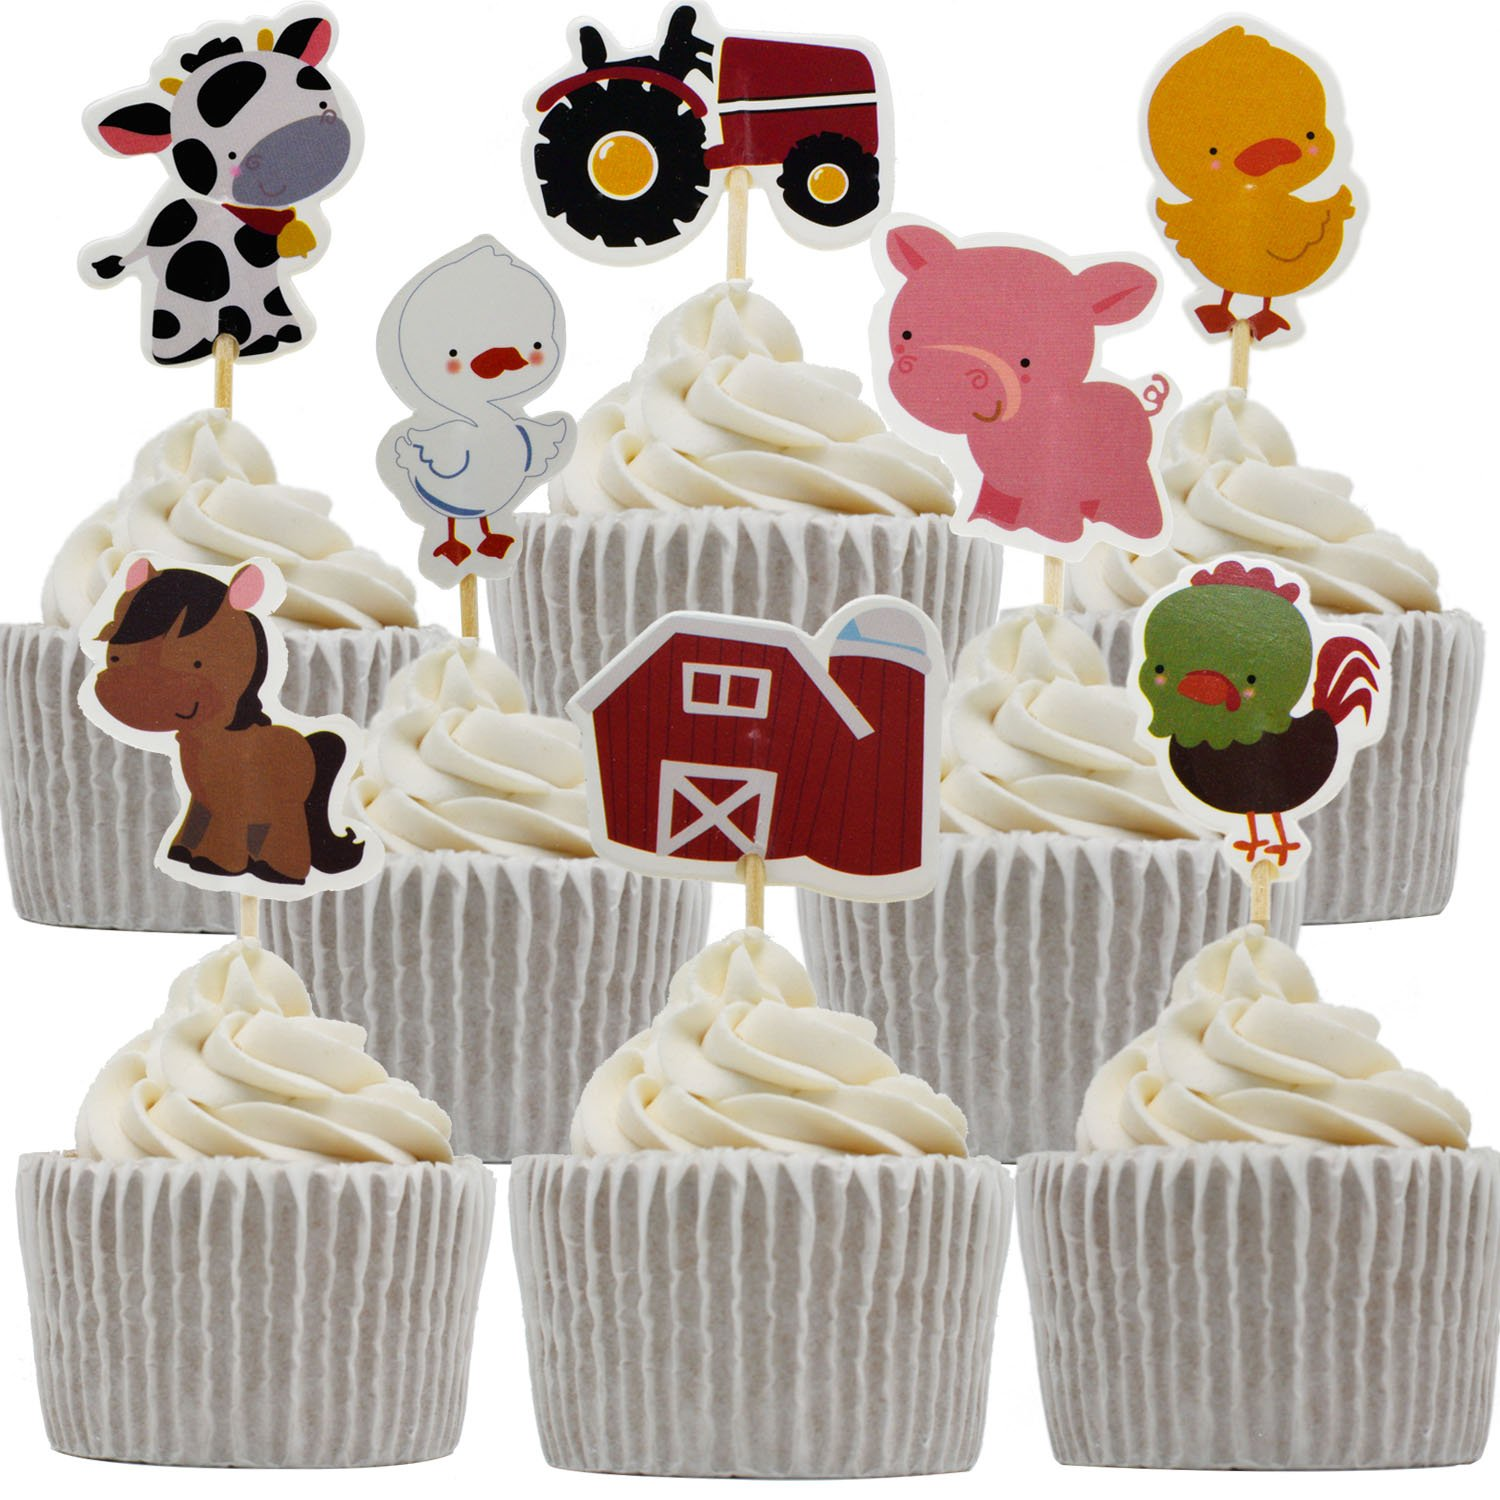 Betop House 24pcs Farm Animals Themed Party Decorating Cake and Cupcake Toppers